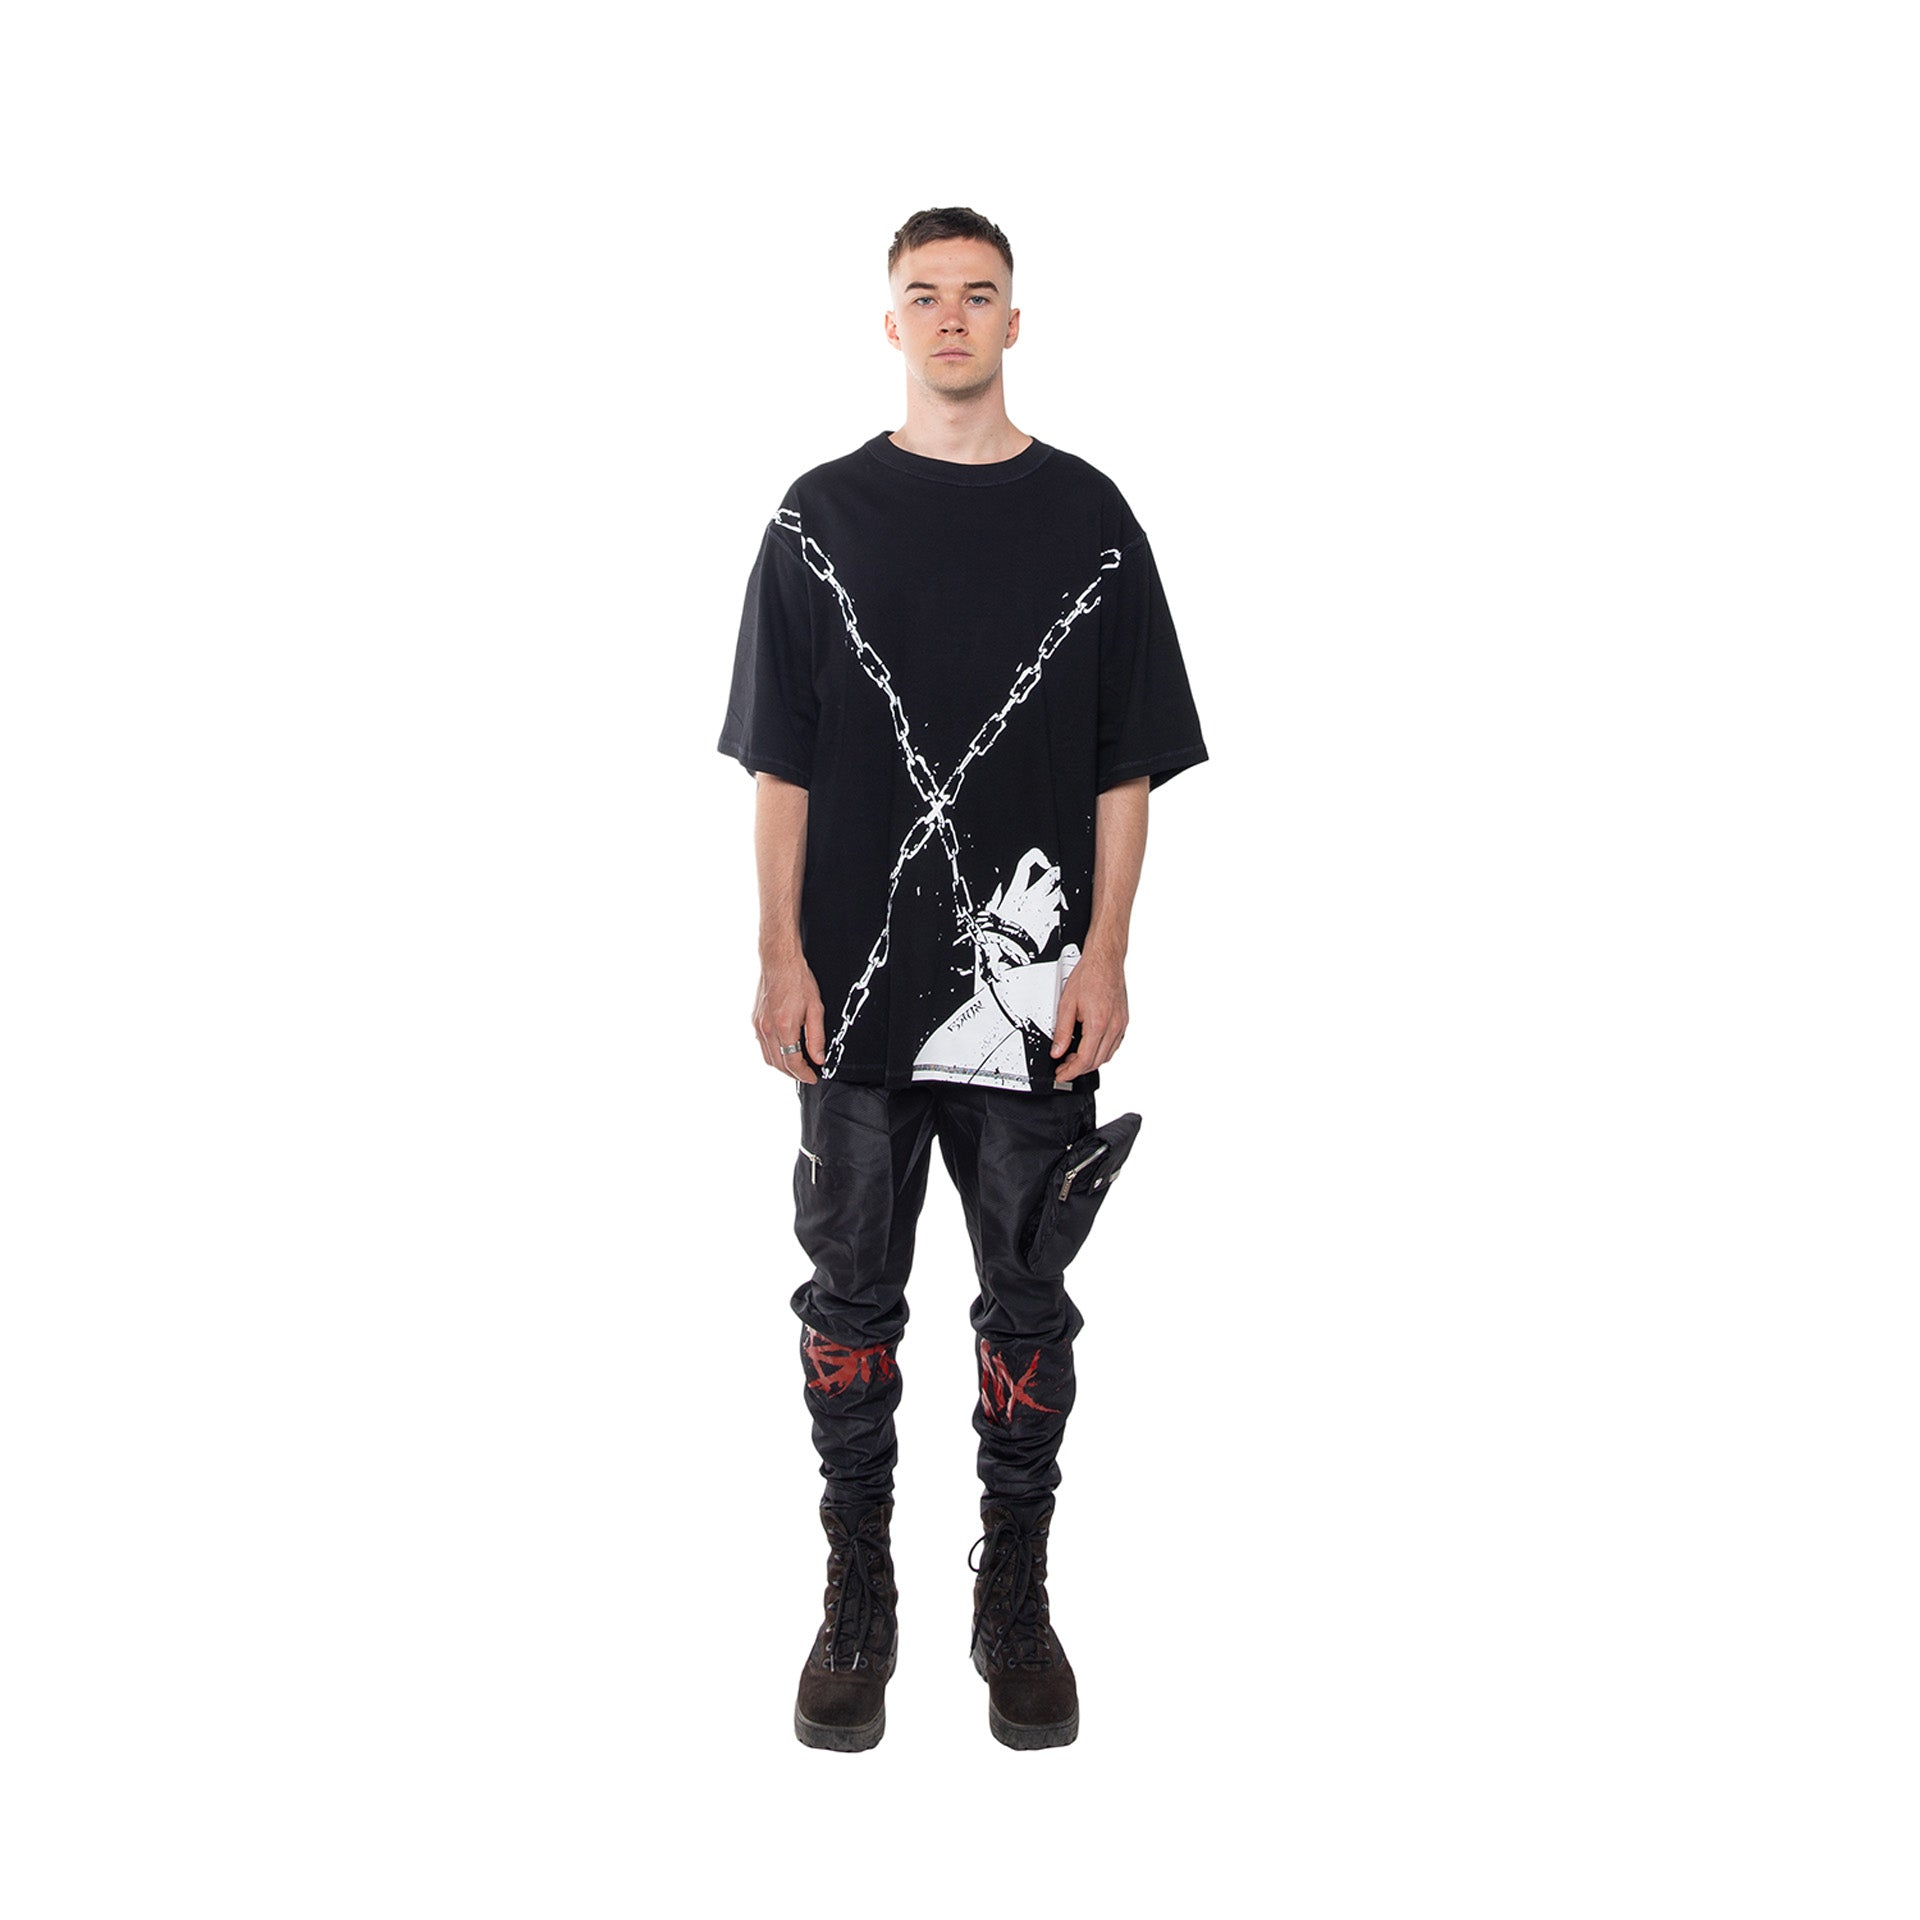 """SEVEN YEARS OF THE VISION"" Oversized Shirt - BLACK"